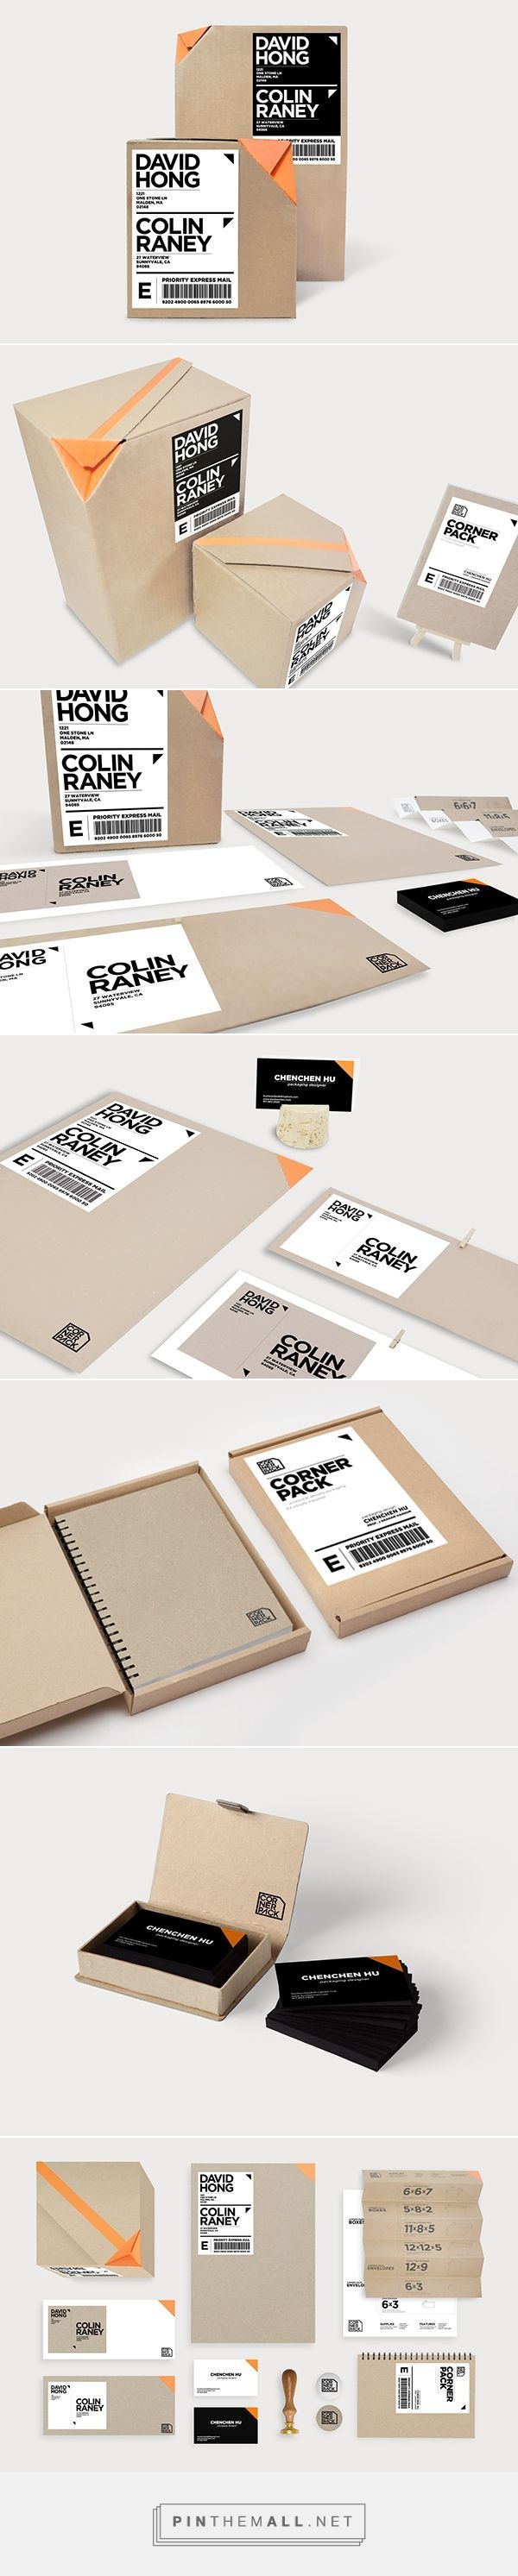 Corner Pack packaging system for the visually impaired by Chencen Hu.